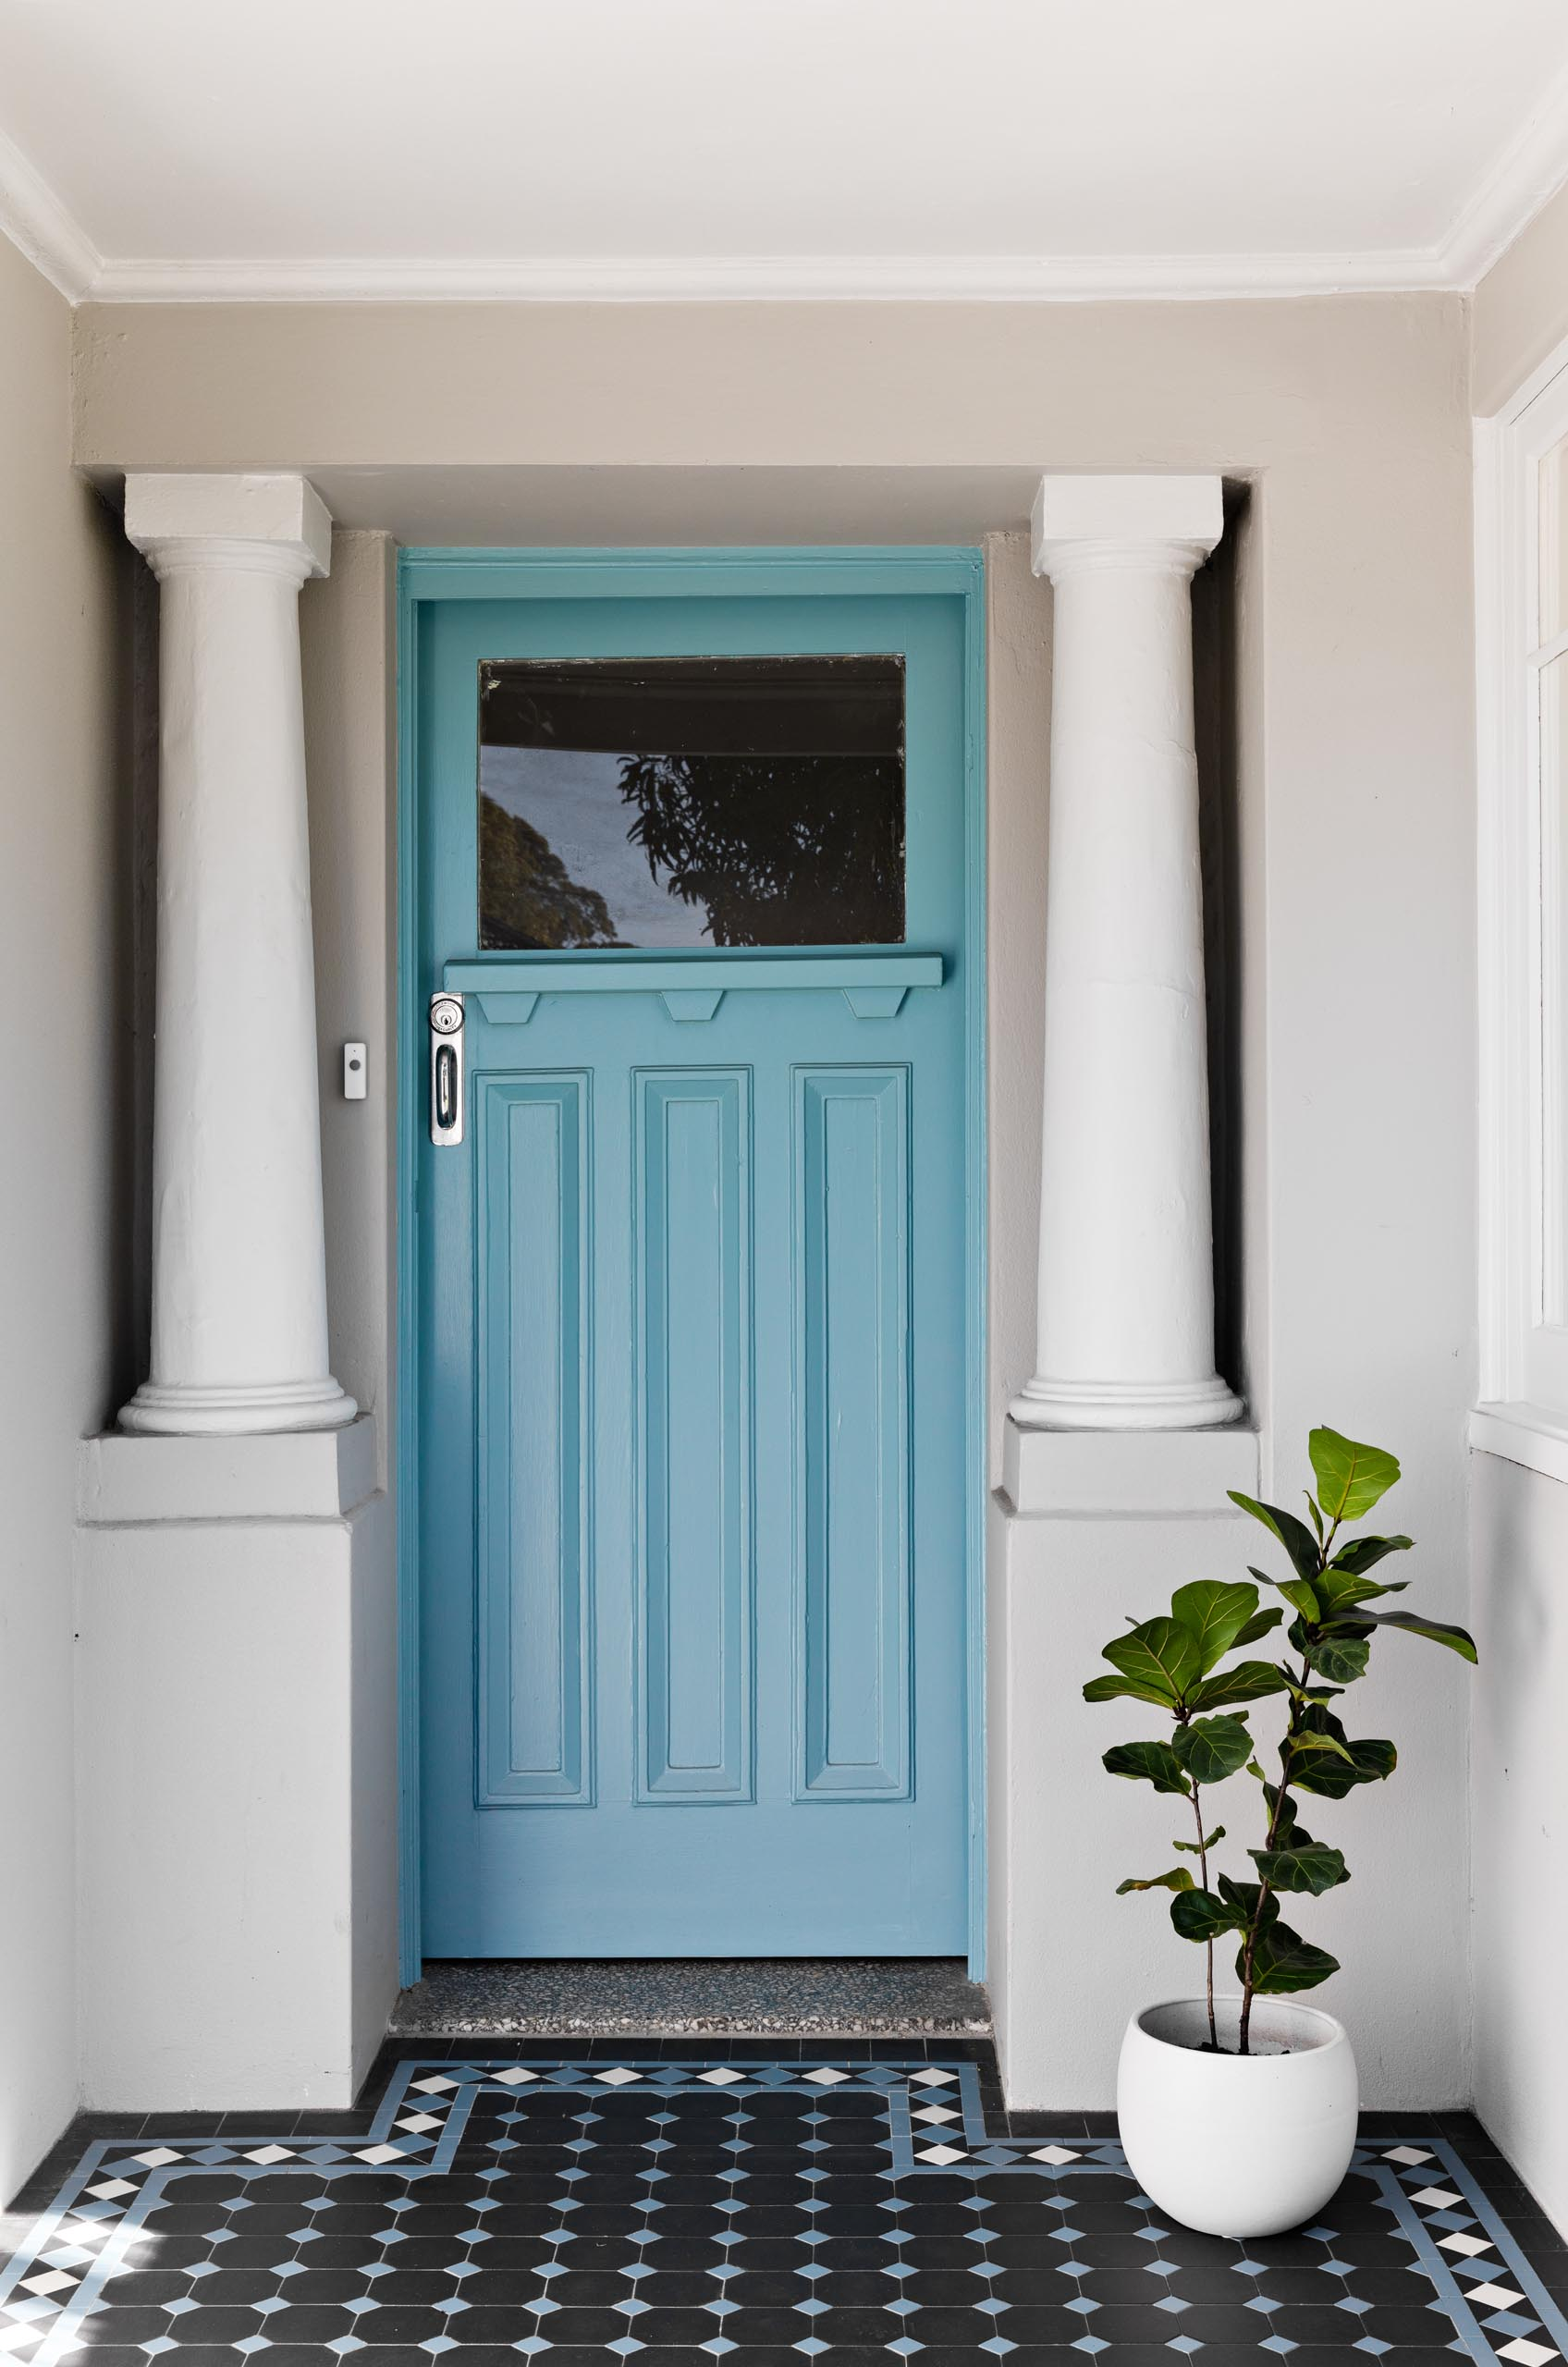 A renovated home with a brick blue front door.